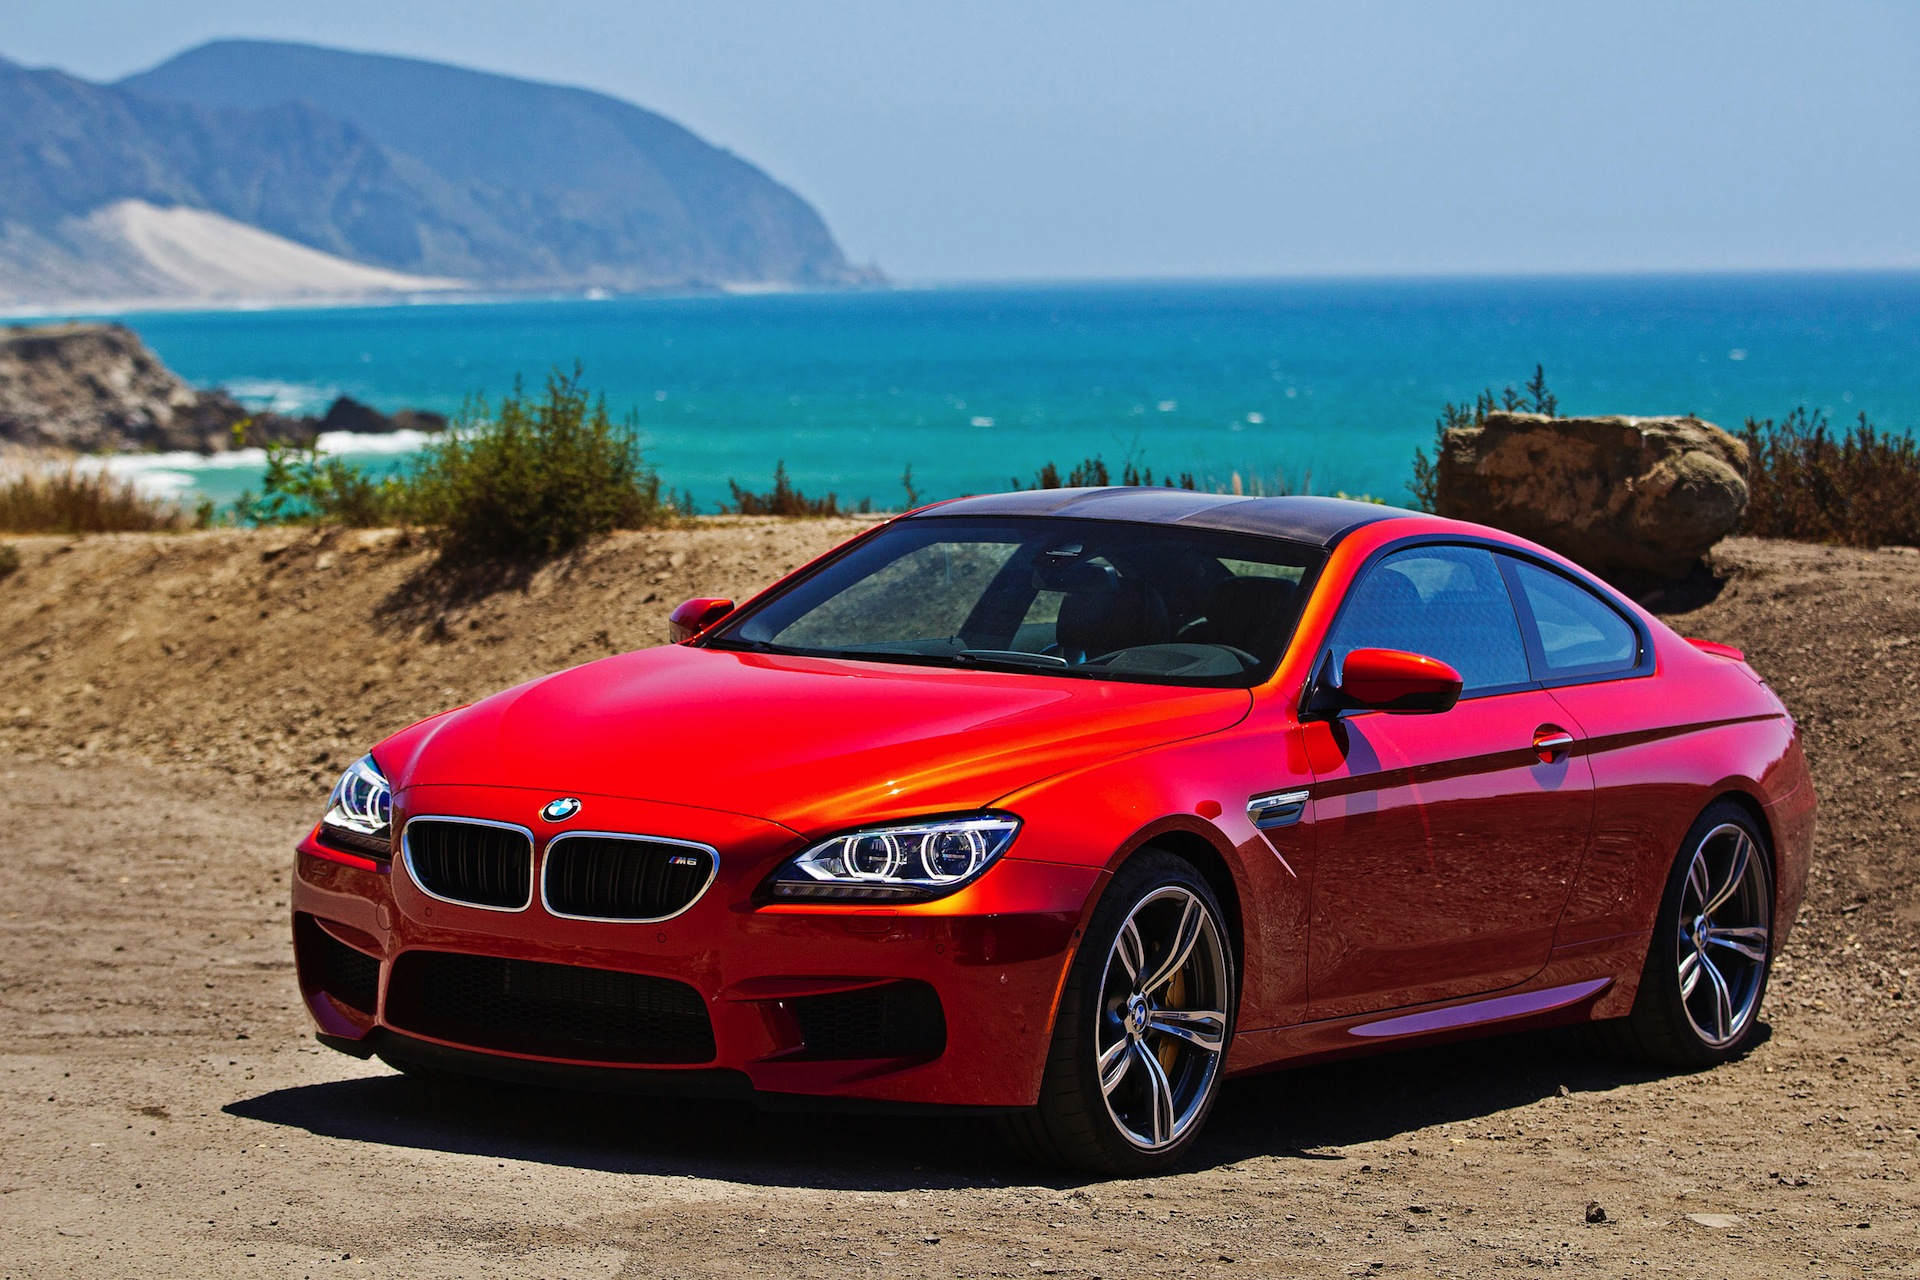 2013 BMW M6 Coupe. - ForceGT.com